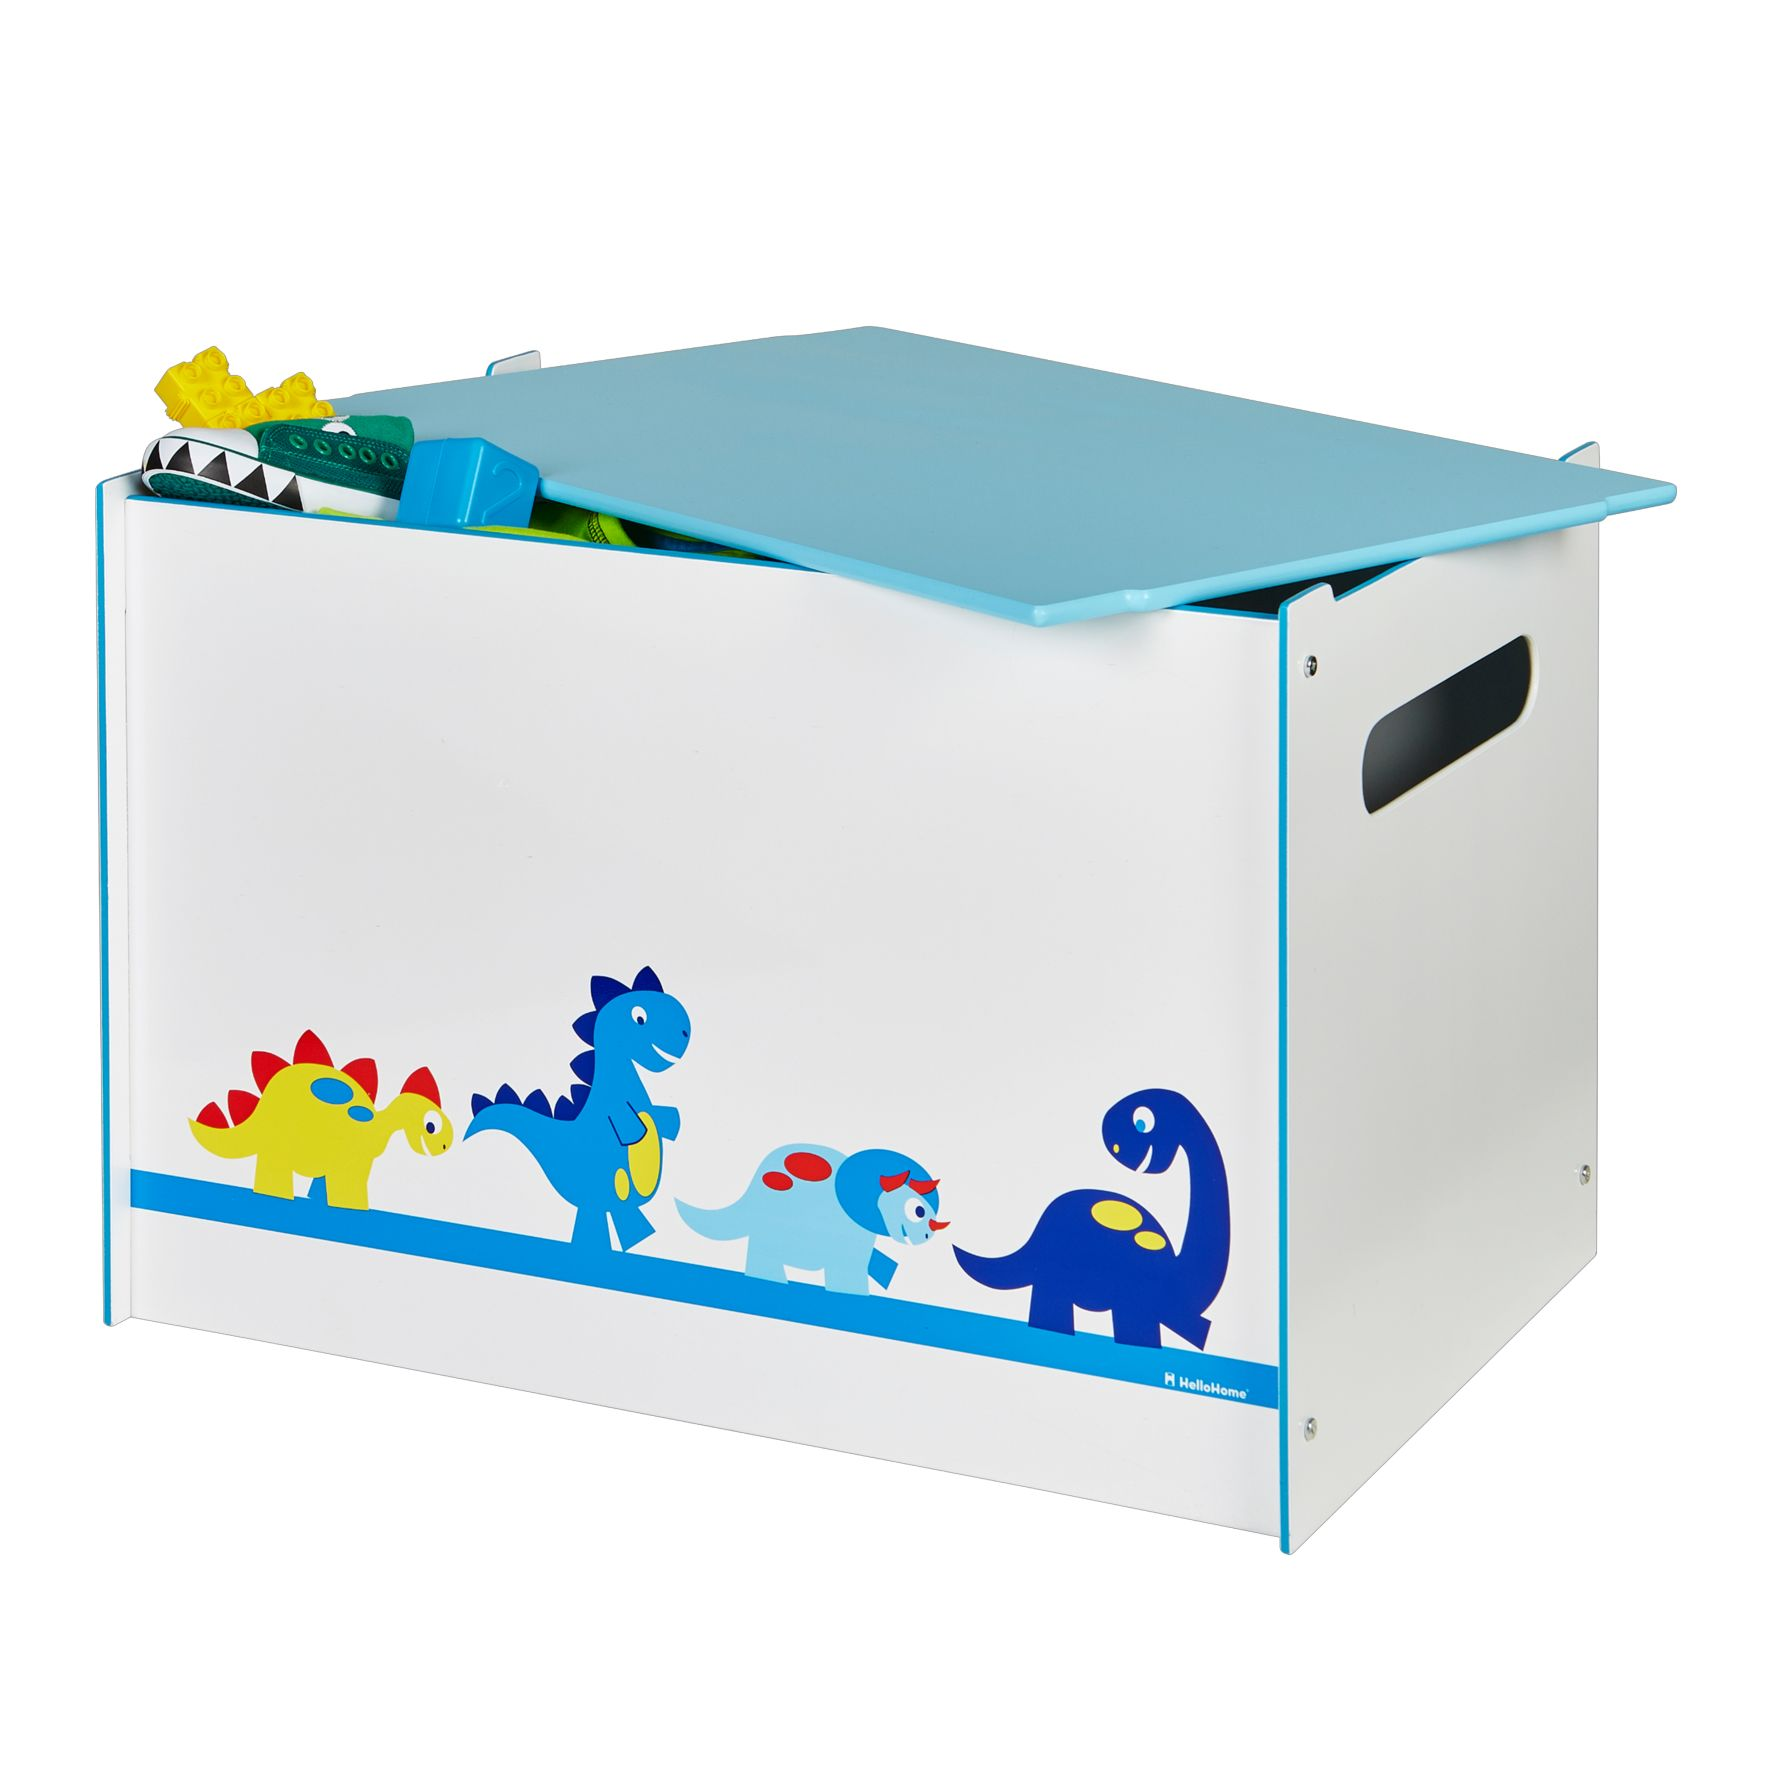 Dinosaurs Toy Box for children in S A